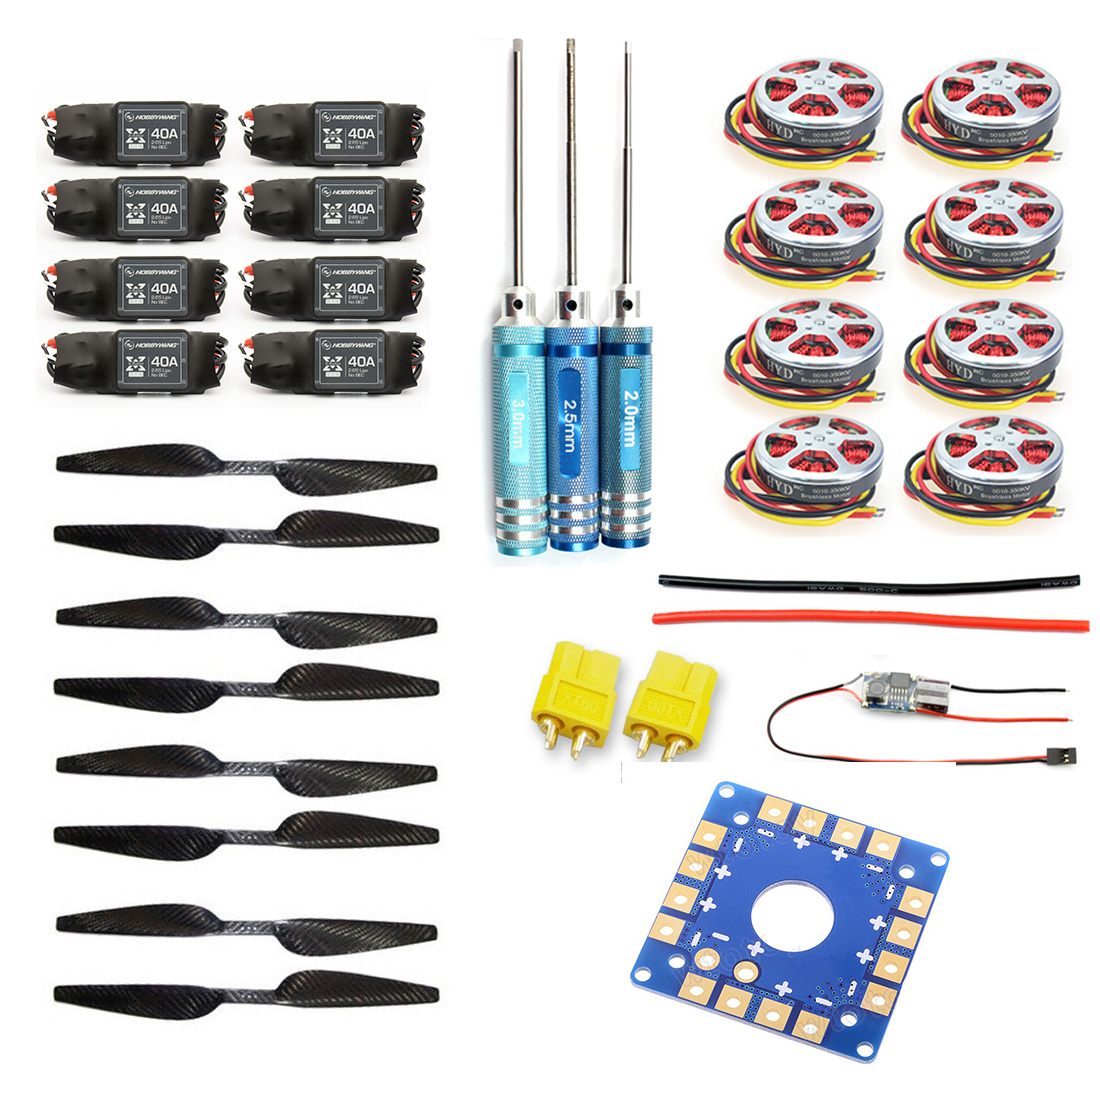 JMT Foldable Rack RC Helicopter Kit KK Connection Board+350KV Brushless Disk Motor+16x5.0 Propeller+40A ESC F05423-F 4set lot universal rc quadcopter part kit 1045 propeller 1pair hp 30a brushless esc a2212 1000kv outrunner brushless motor